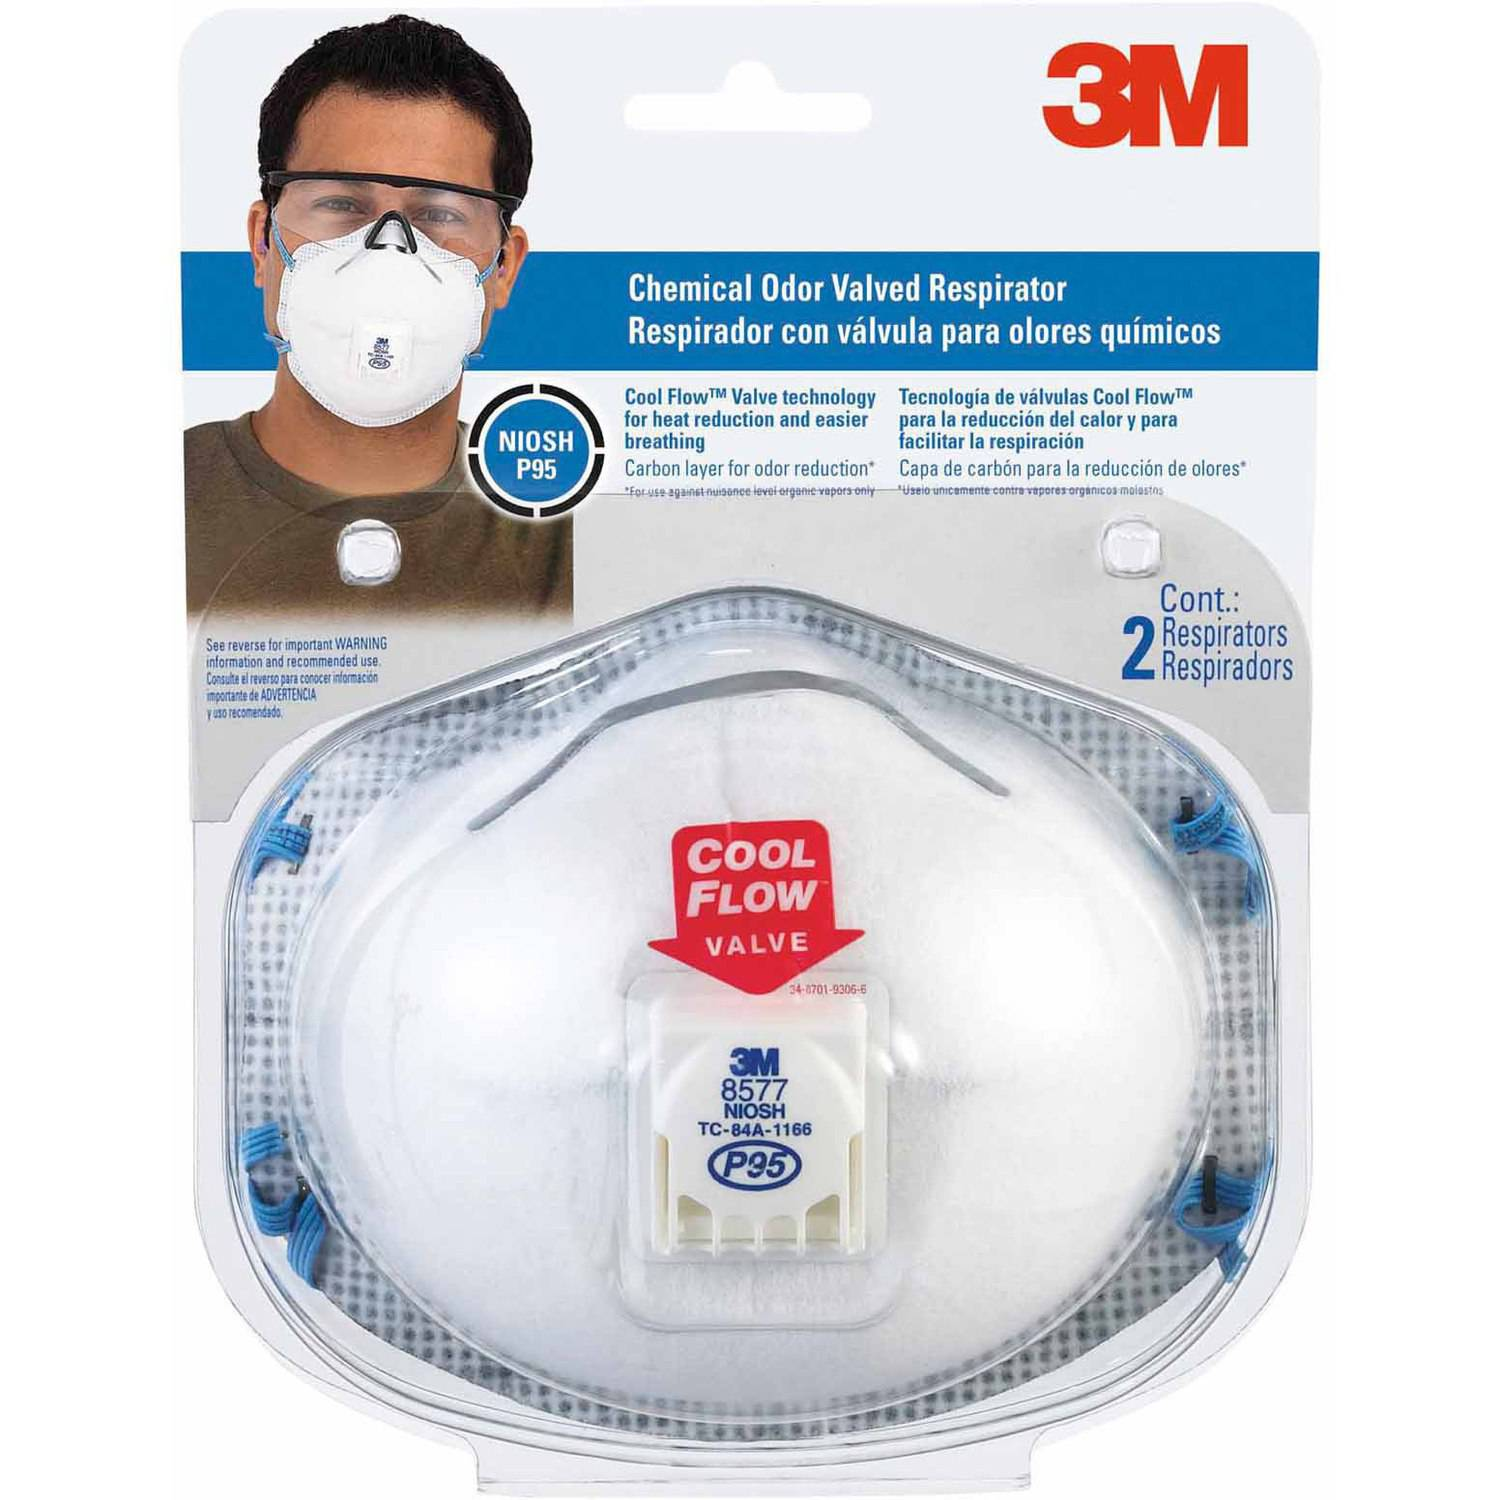 3M Chemical Odor Valved Respirator, 2 Pack